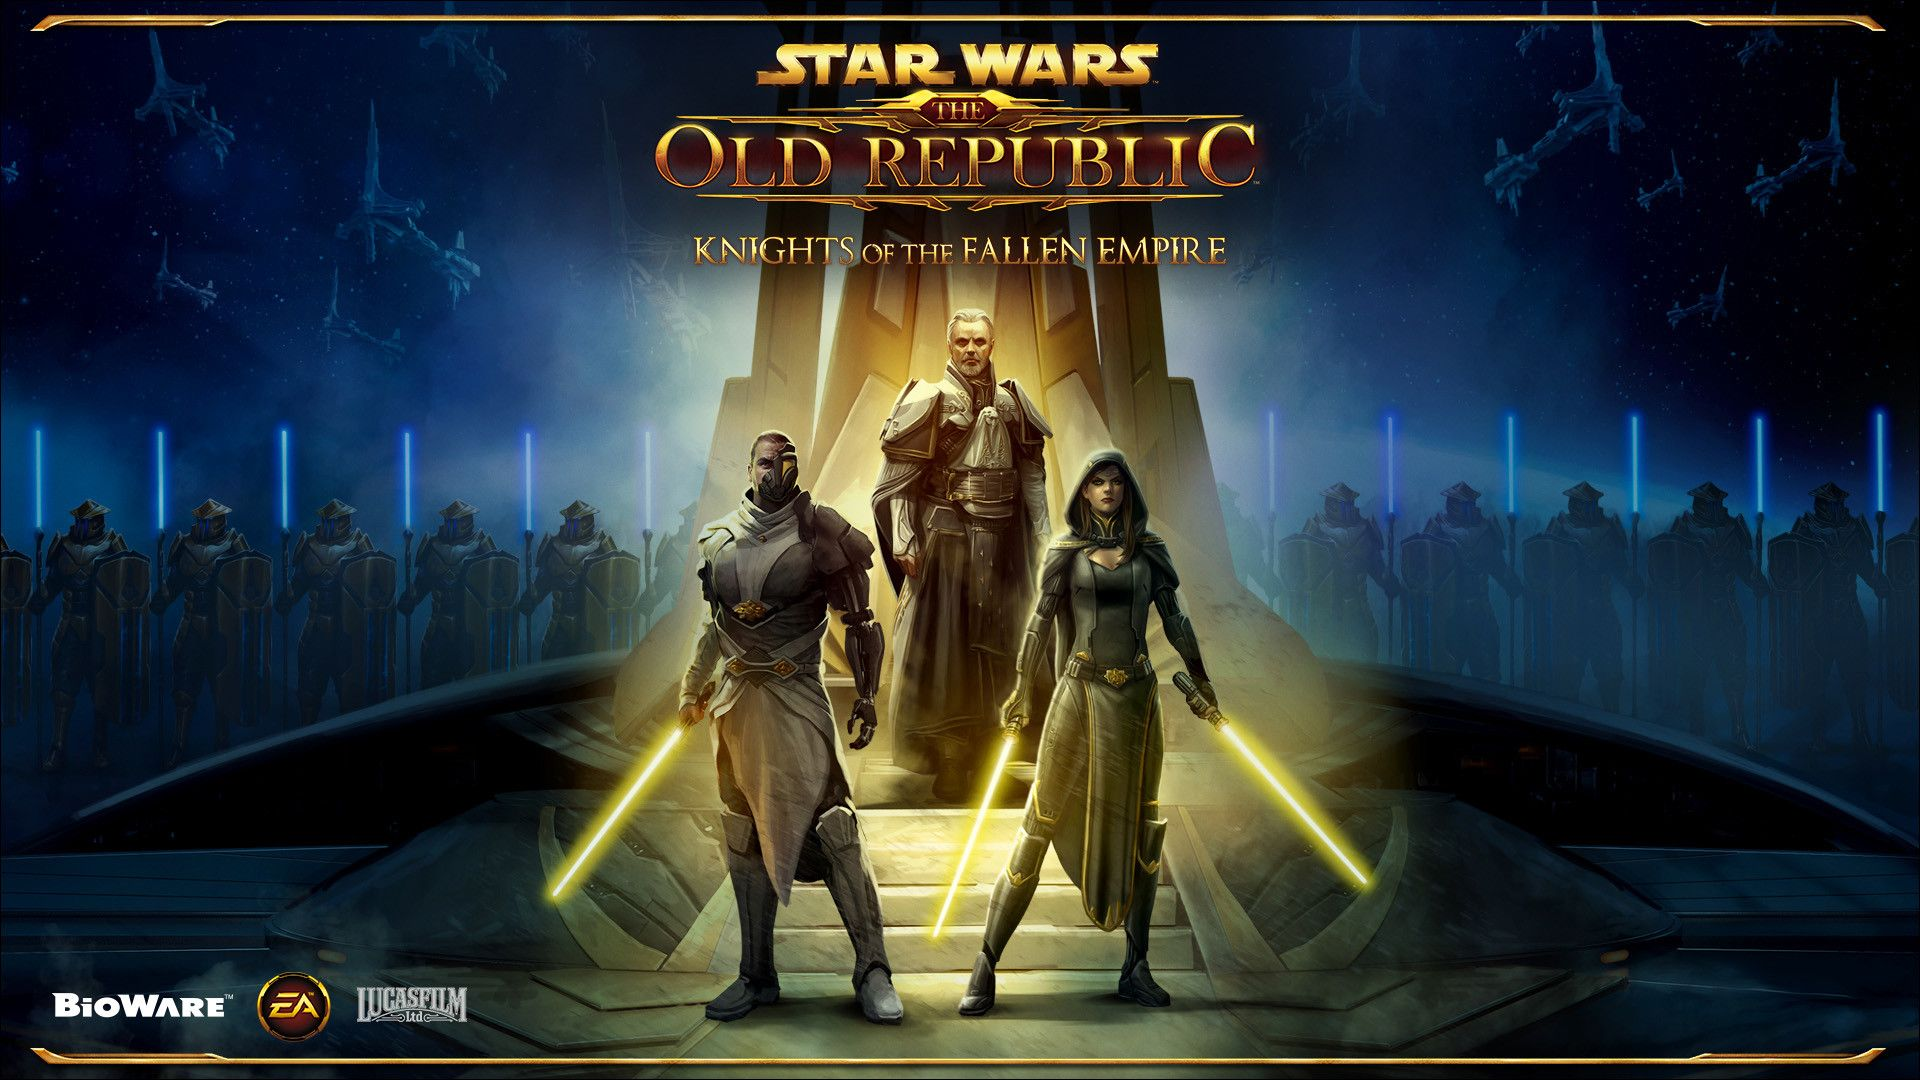 Star Wars Old Republic Wallpapers Top Free Star Wars Old